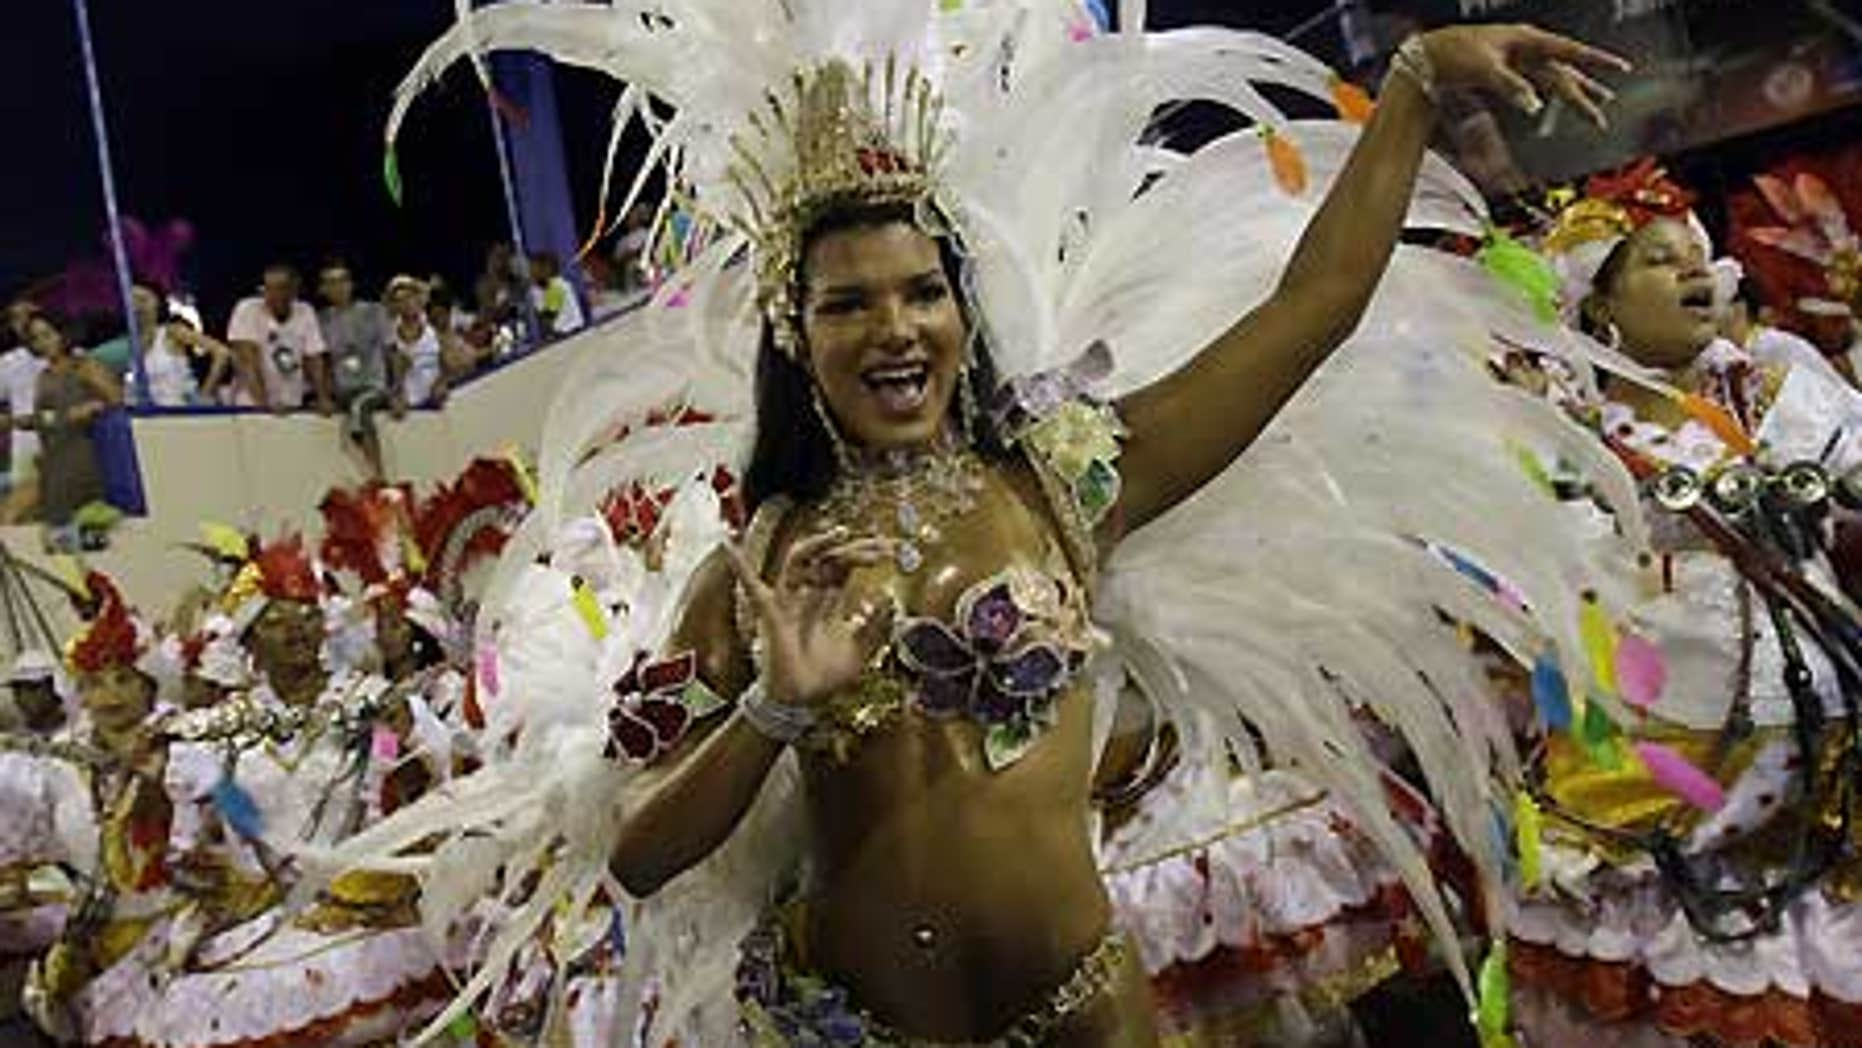 Feb. 24: Juliane Almeida, queen of the drums' section of Viradouro samba school dances during carnival parade at the sambodrome, in Rio de Janeiro.